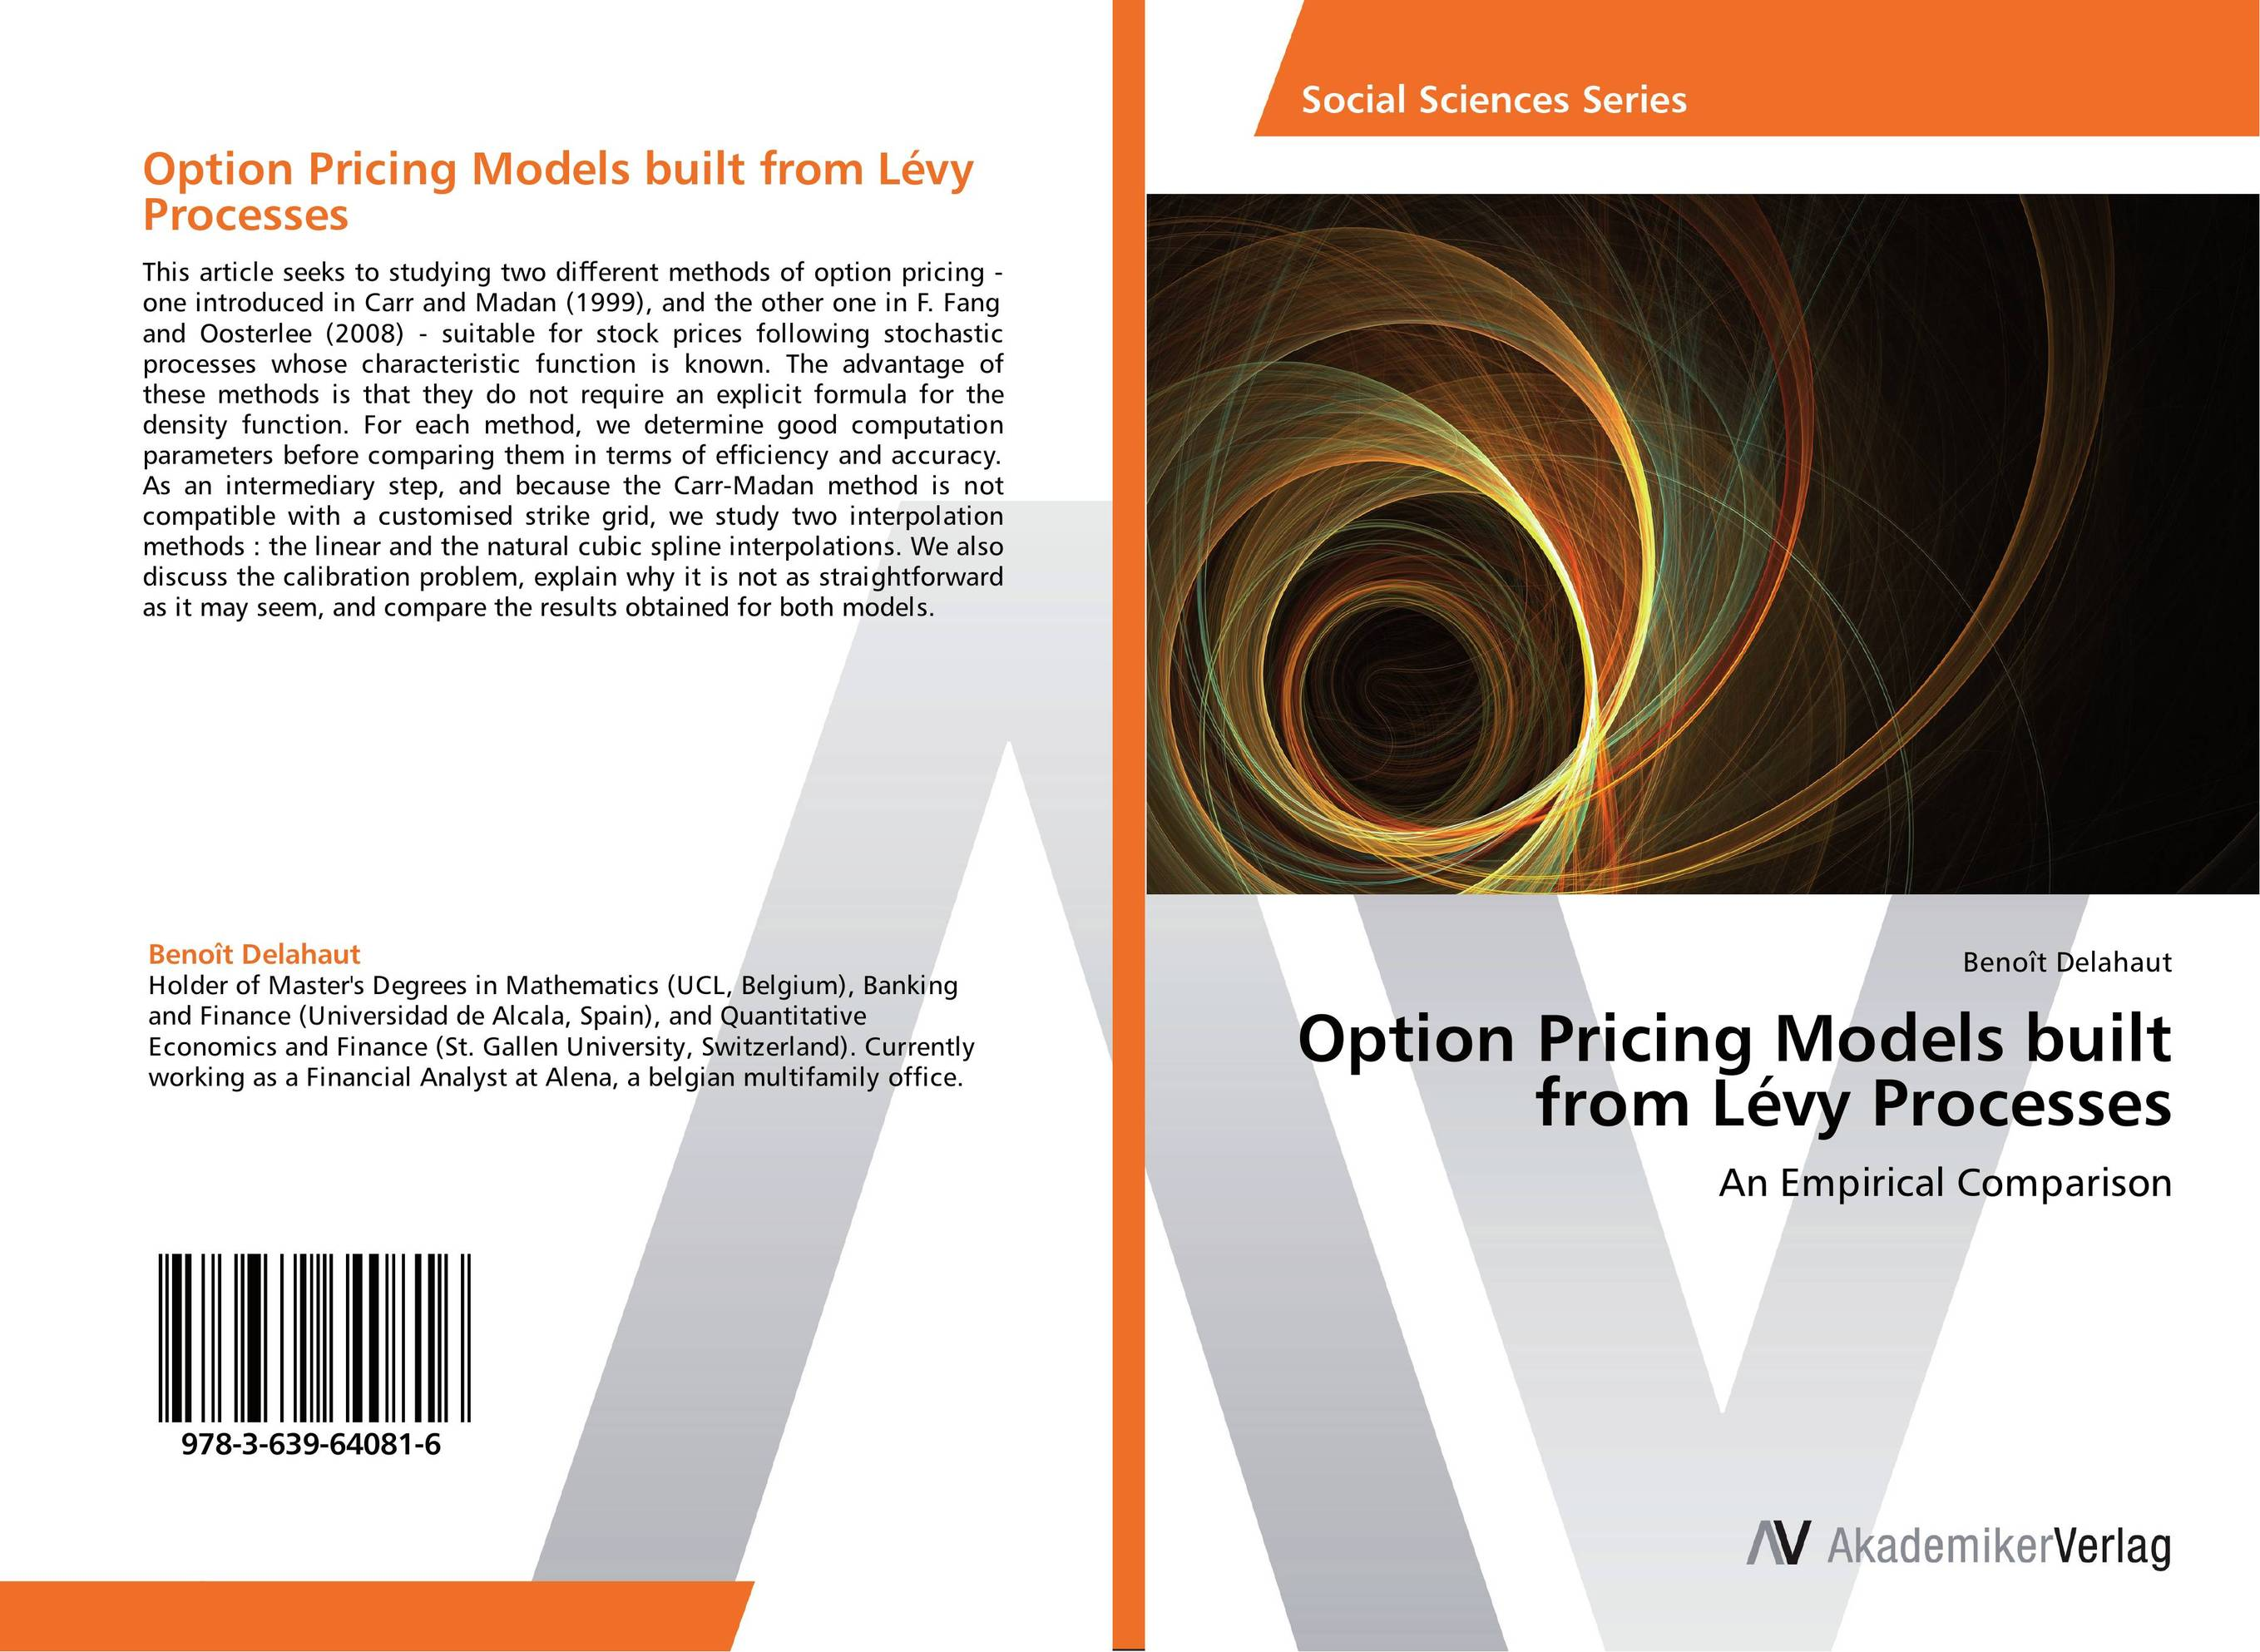 Option Pricing Models built from Levy Processes